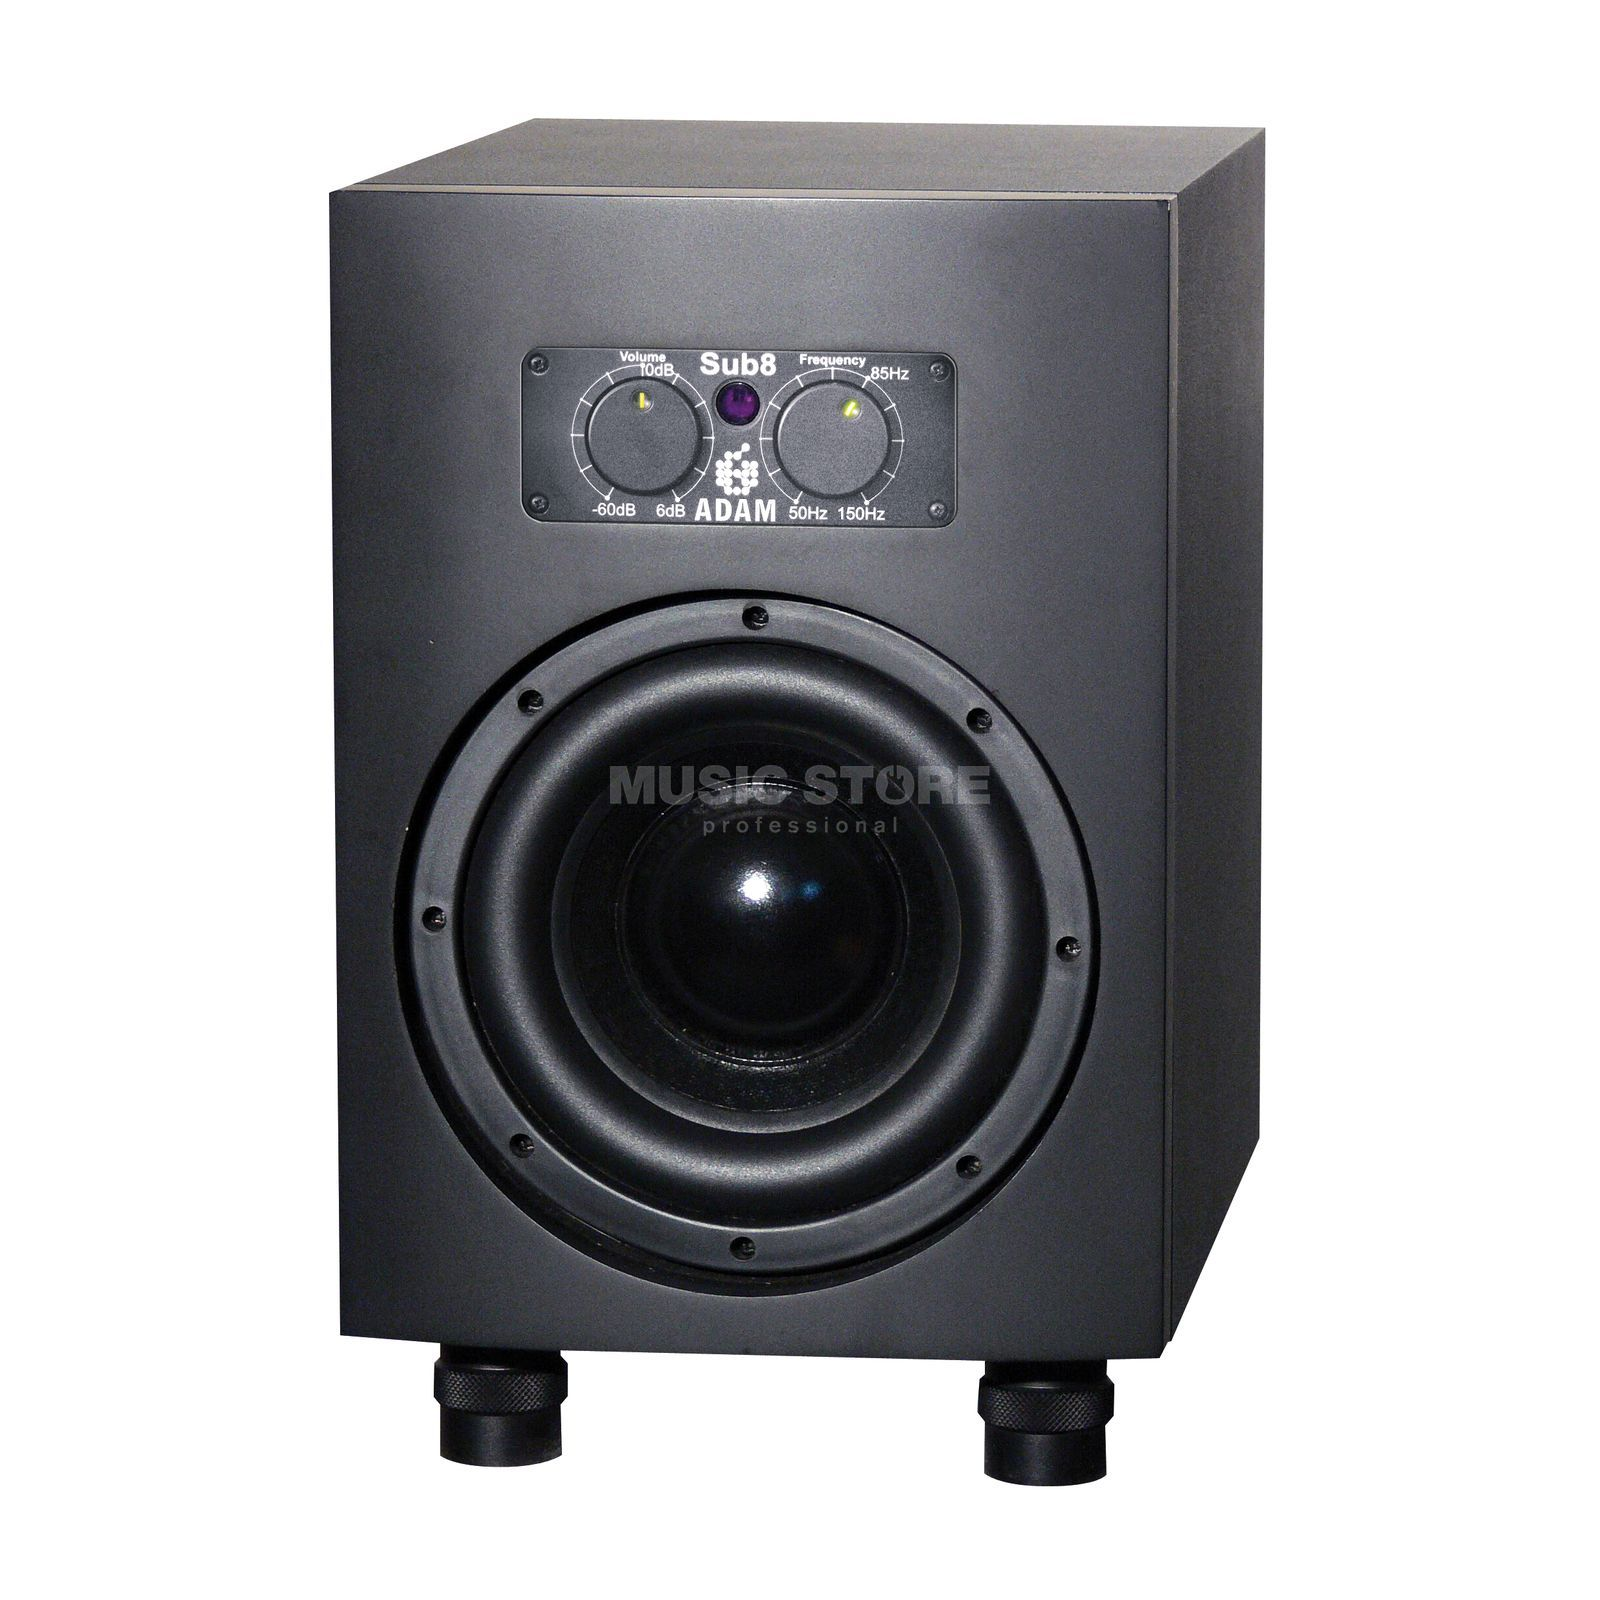 Adam Audio Sub 8 FR Subwoofer, factory refurbished Produktbild